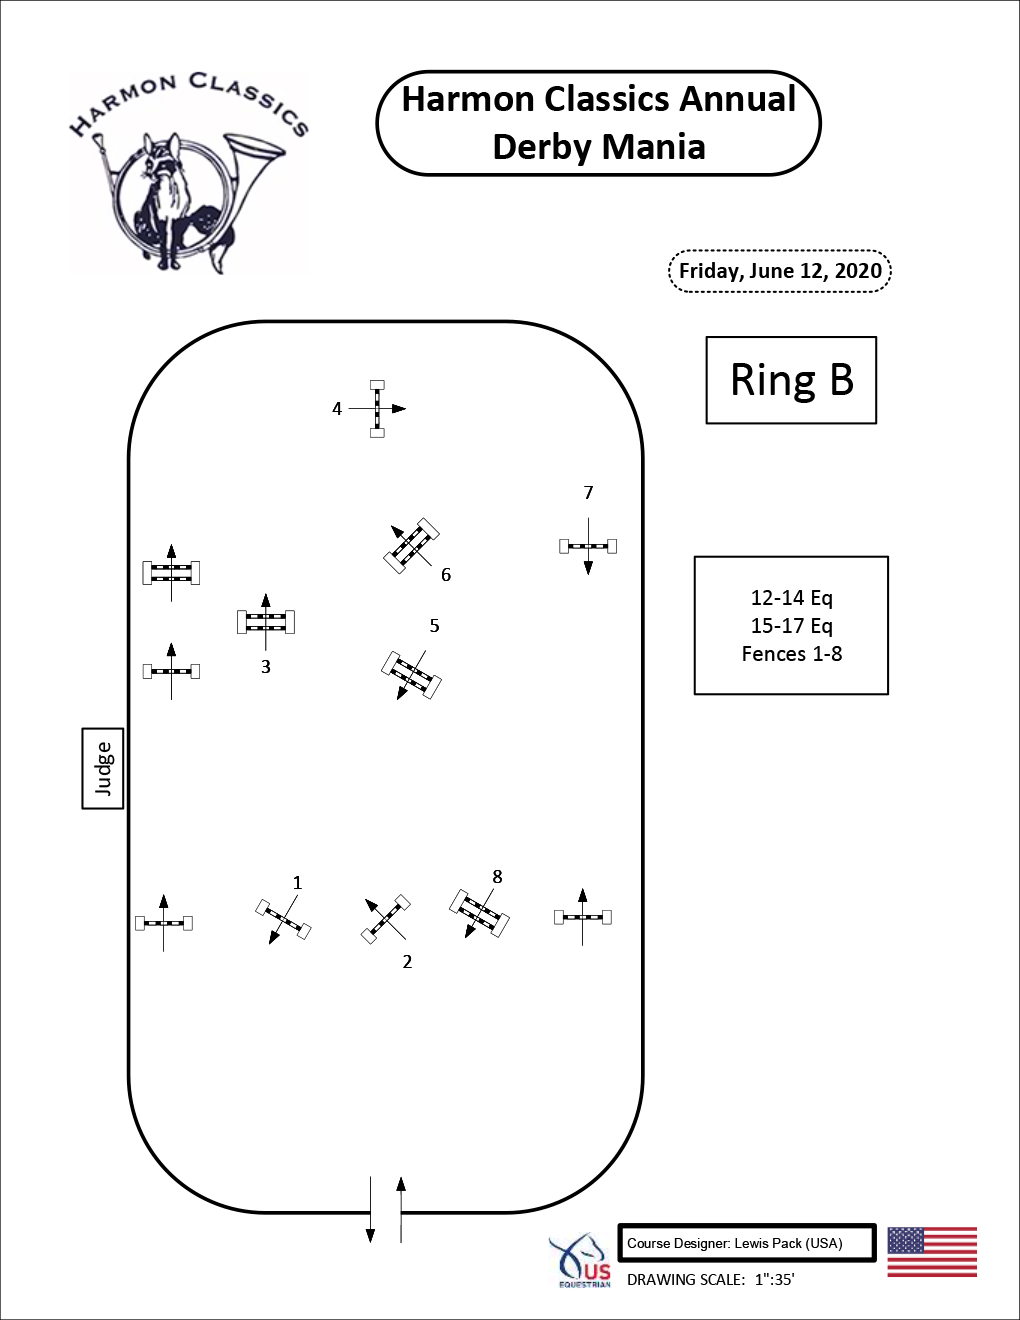 Ring-B-Friday6-12-12-14-and-15-17-Equitation-Harmon-Classics-Derby-Mania